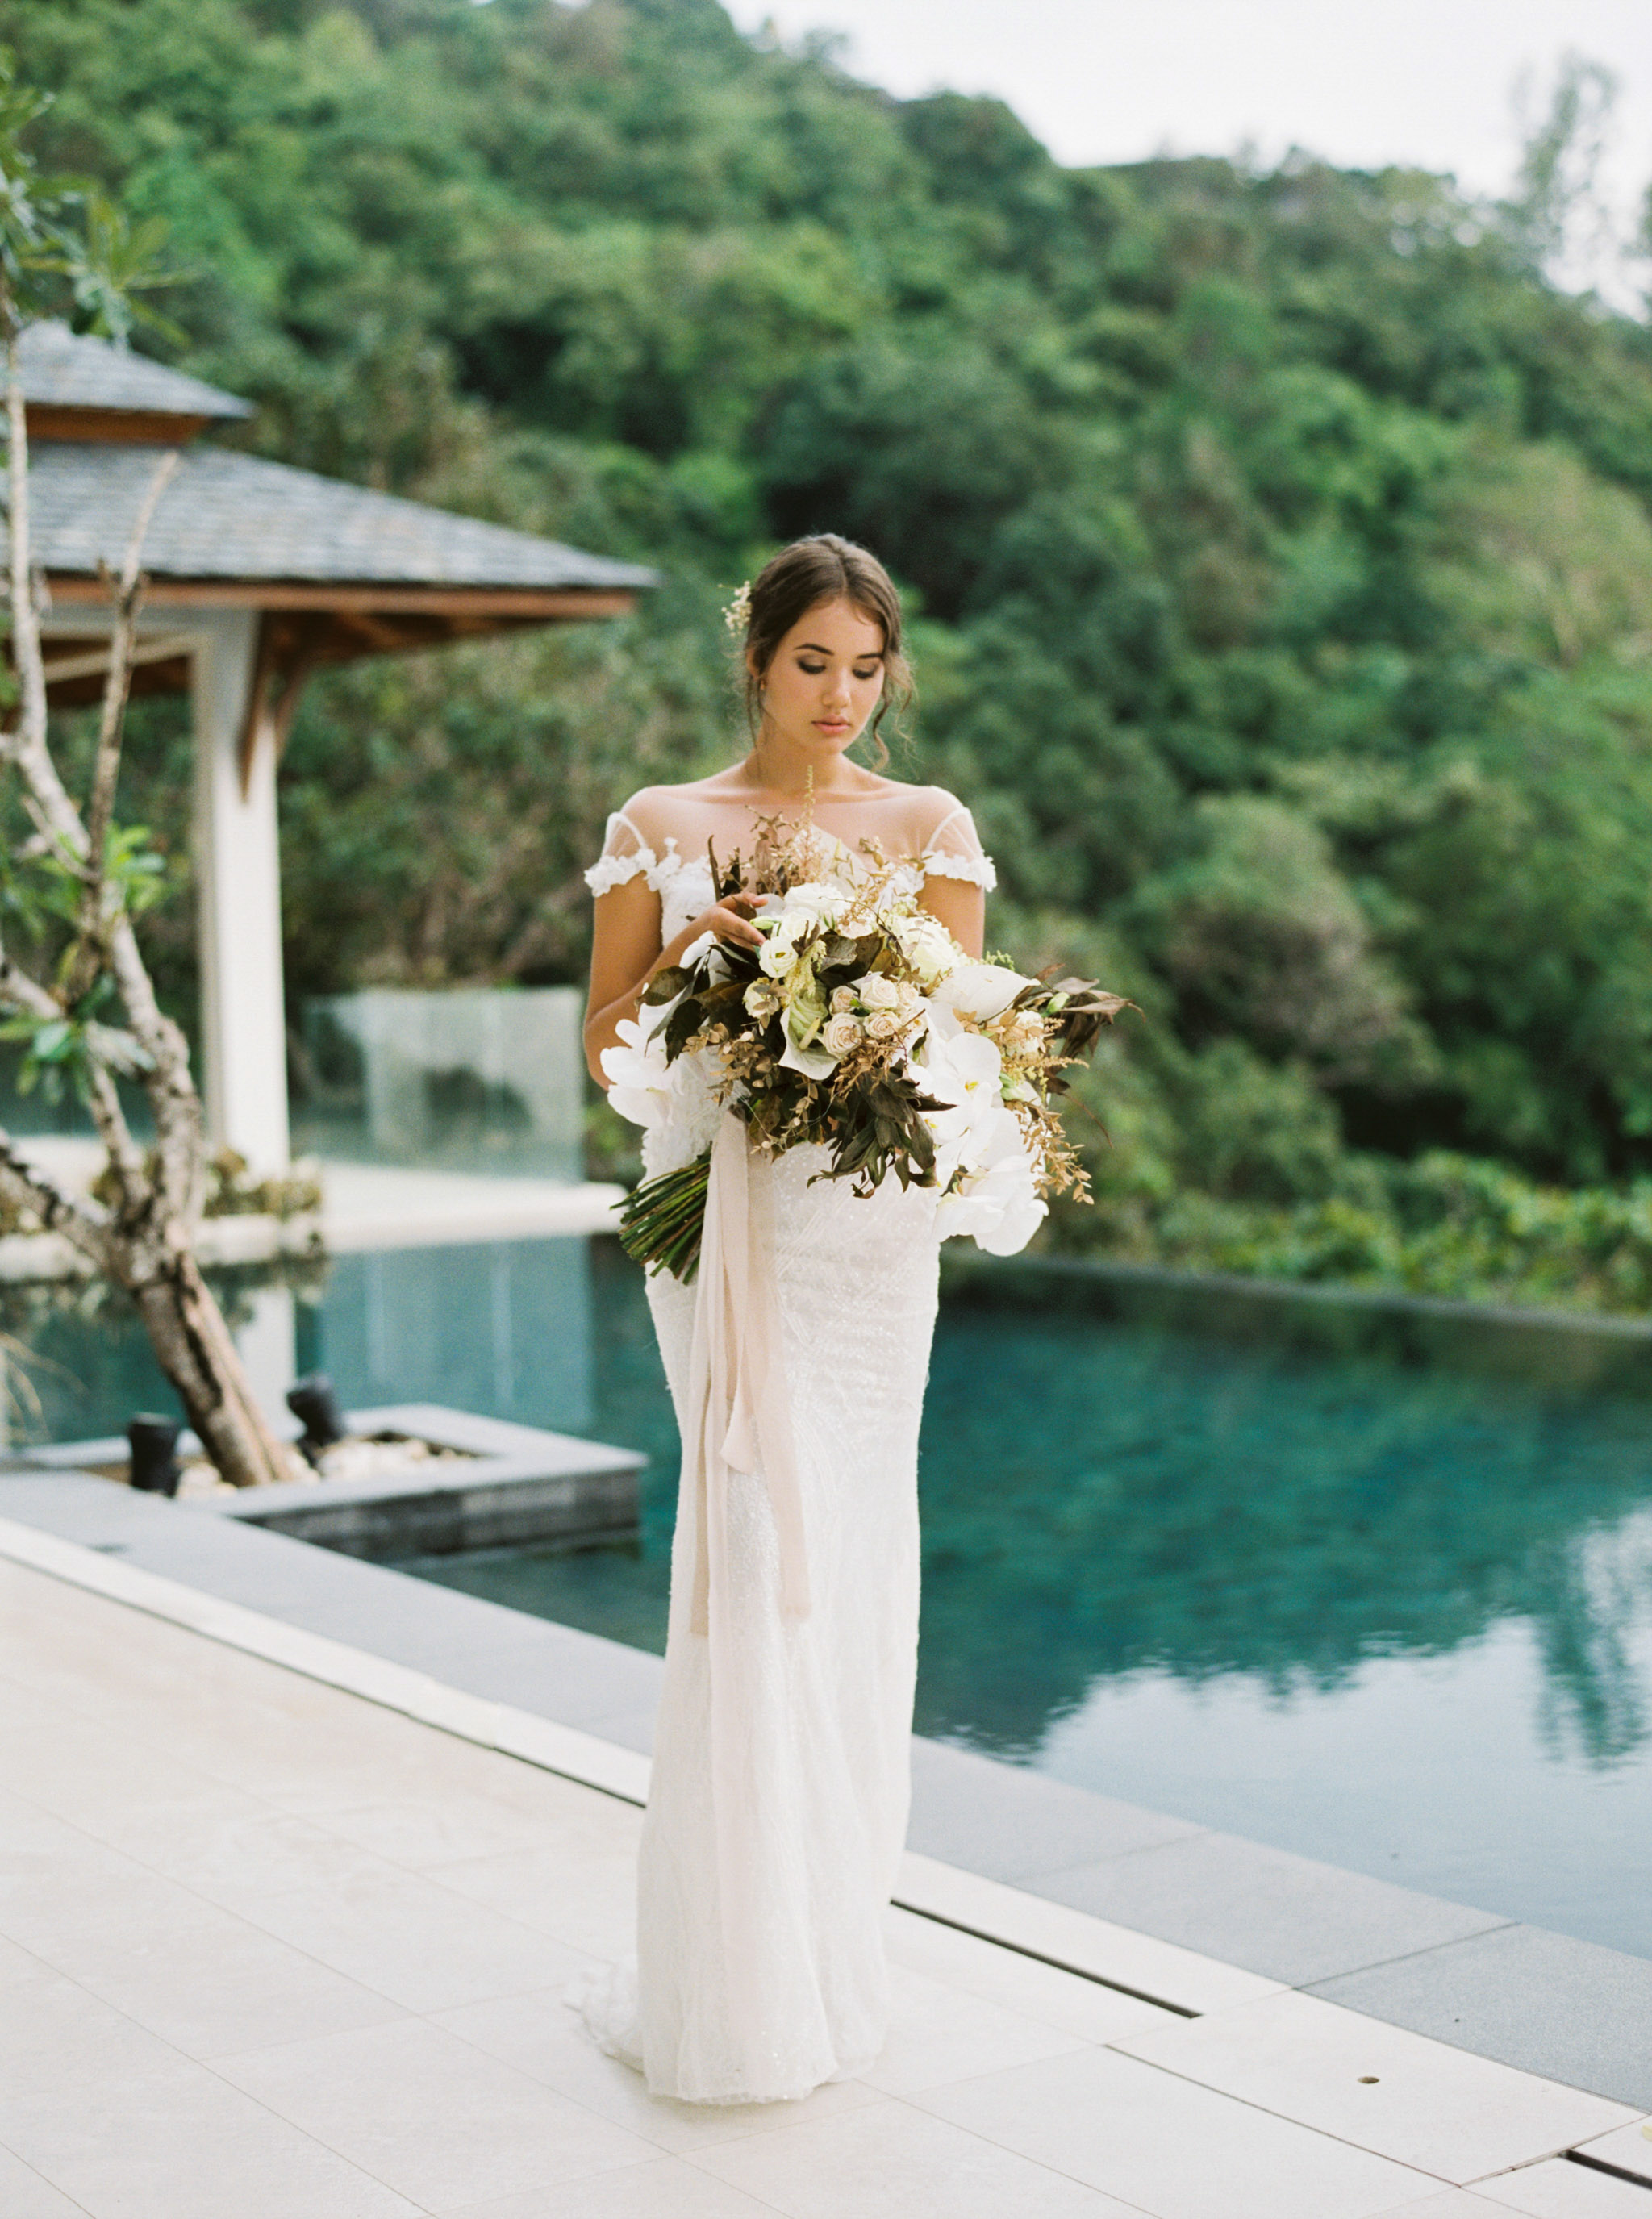 Destination Wedding at The Aquila Luxury Villas in Phuket Thailand Fine Art Film Wedding Photographer Sheri McMahon-00081-81.jpg